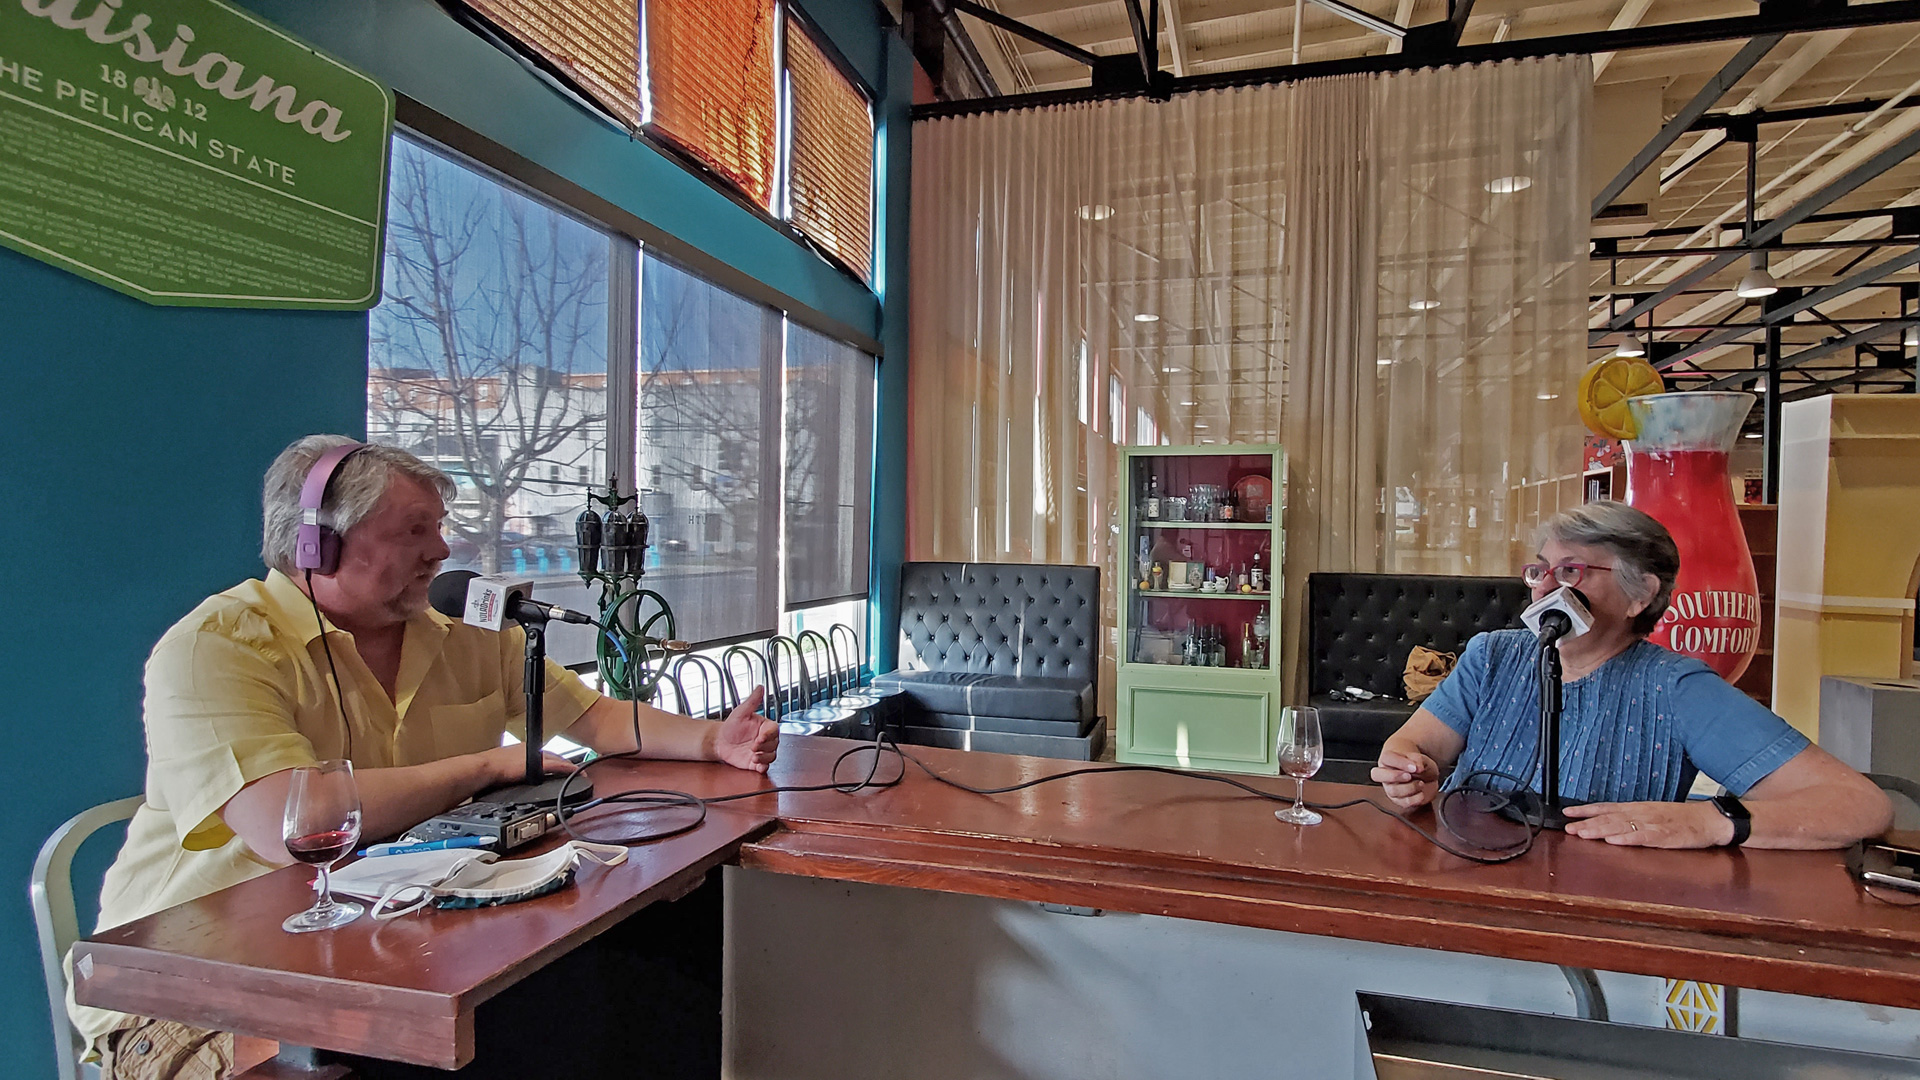 The NOLADrinks Show – Liz Williams of the Southern Food and Beverage Museum – 2021Ep5. Bryan Dias of The NOLADrinks Show and Liz Williams of the Southern Food and Beverage Museum.